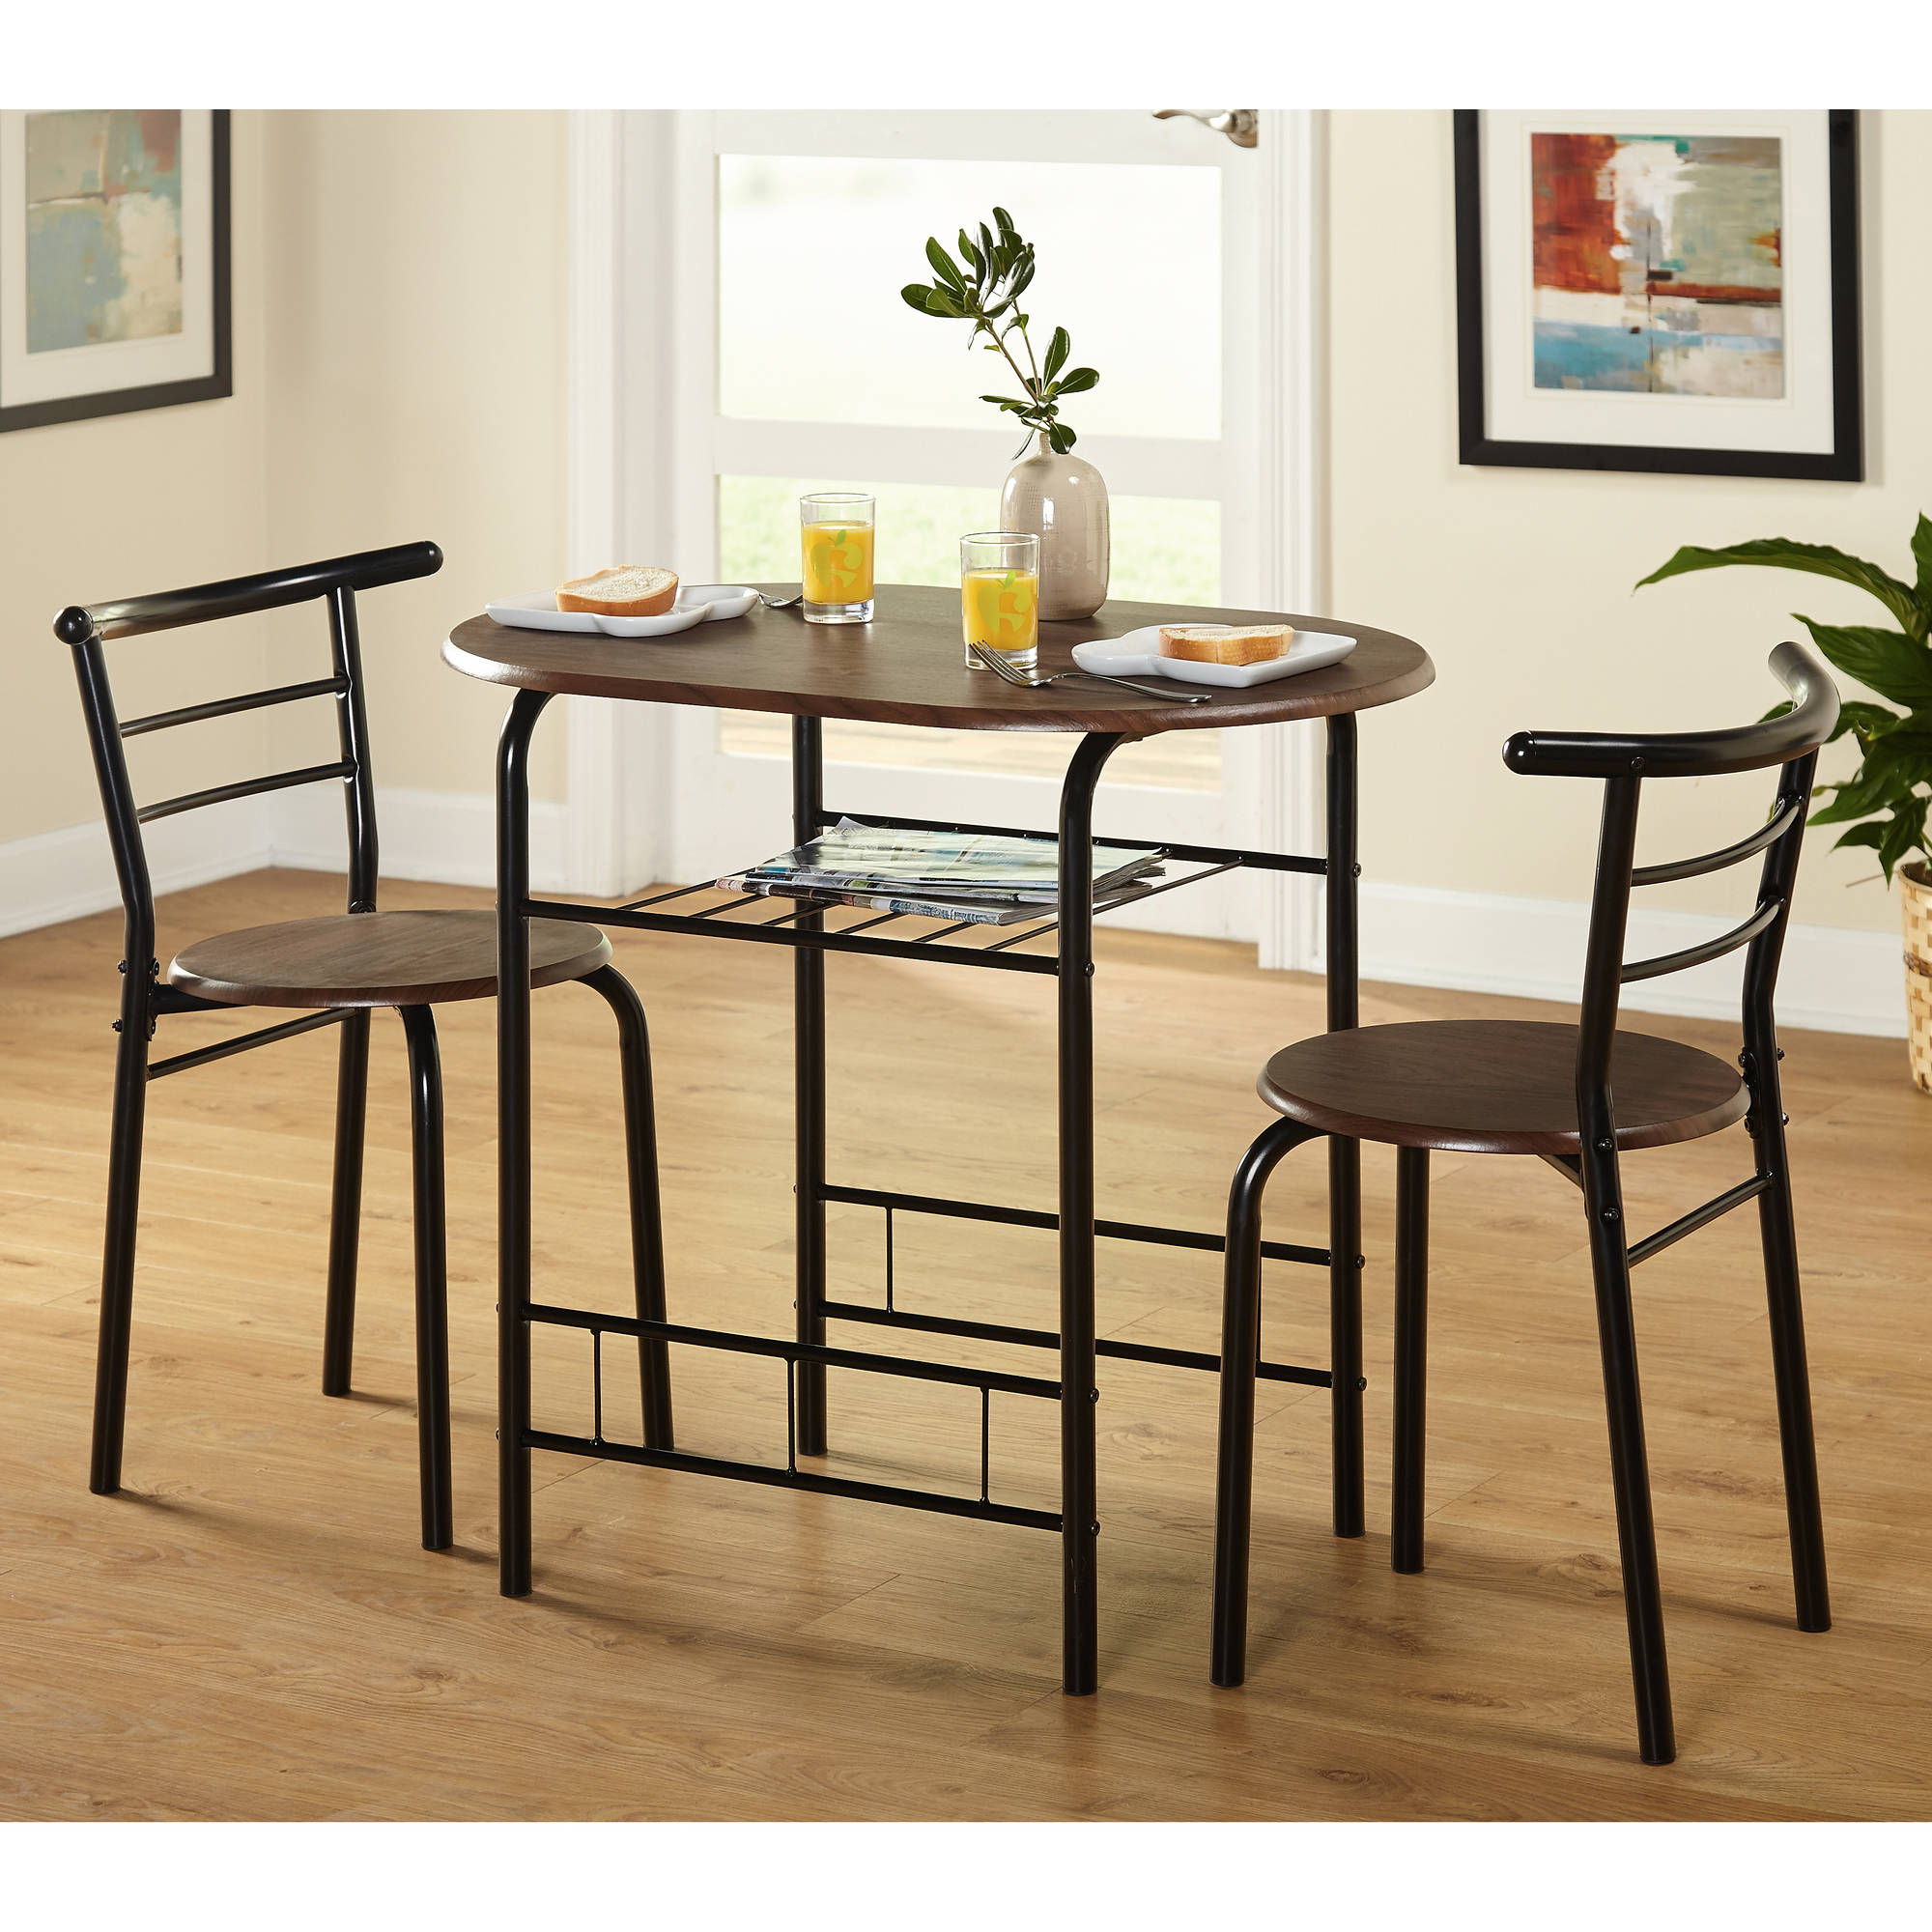 Well Known 3 Piece Dining Sets Intended For Tms 3 Piece Bistro Dining Set (View 9 of 20)